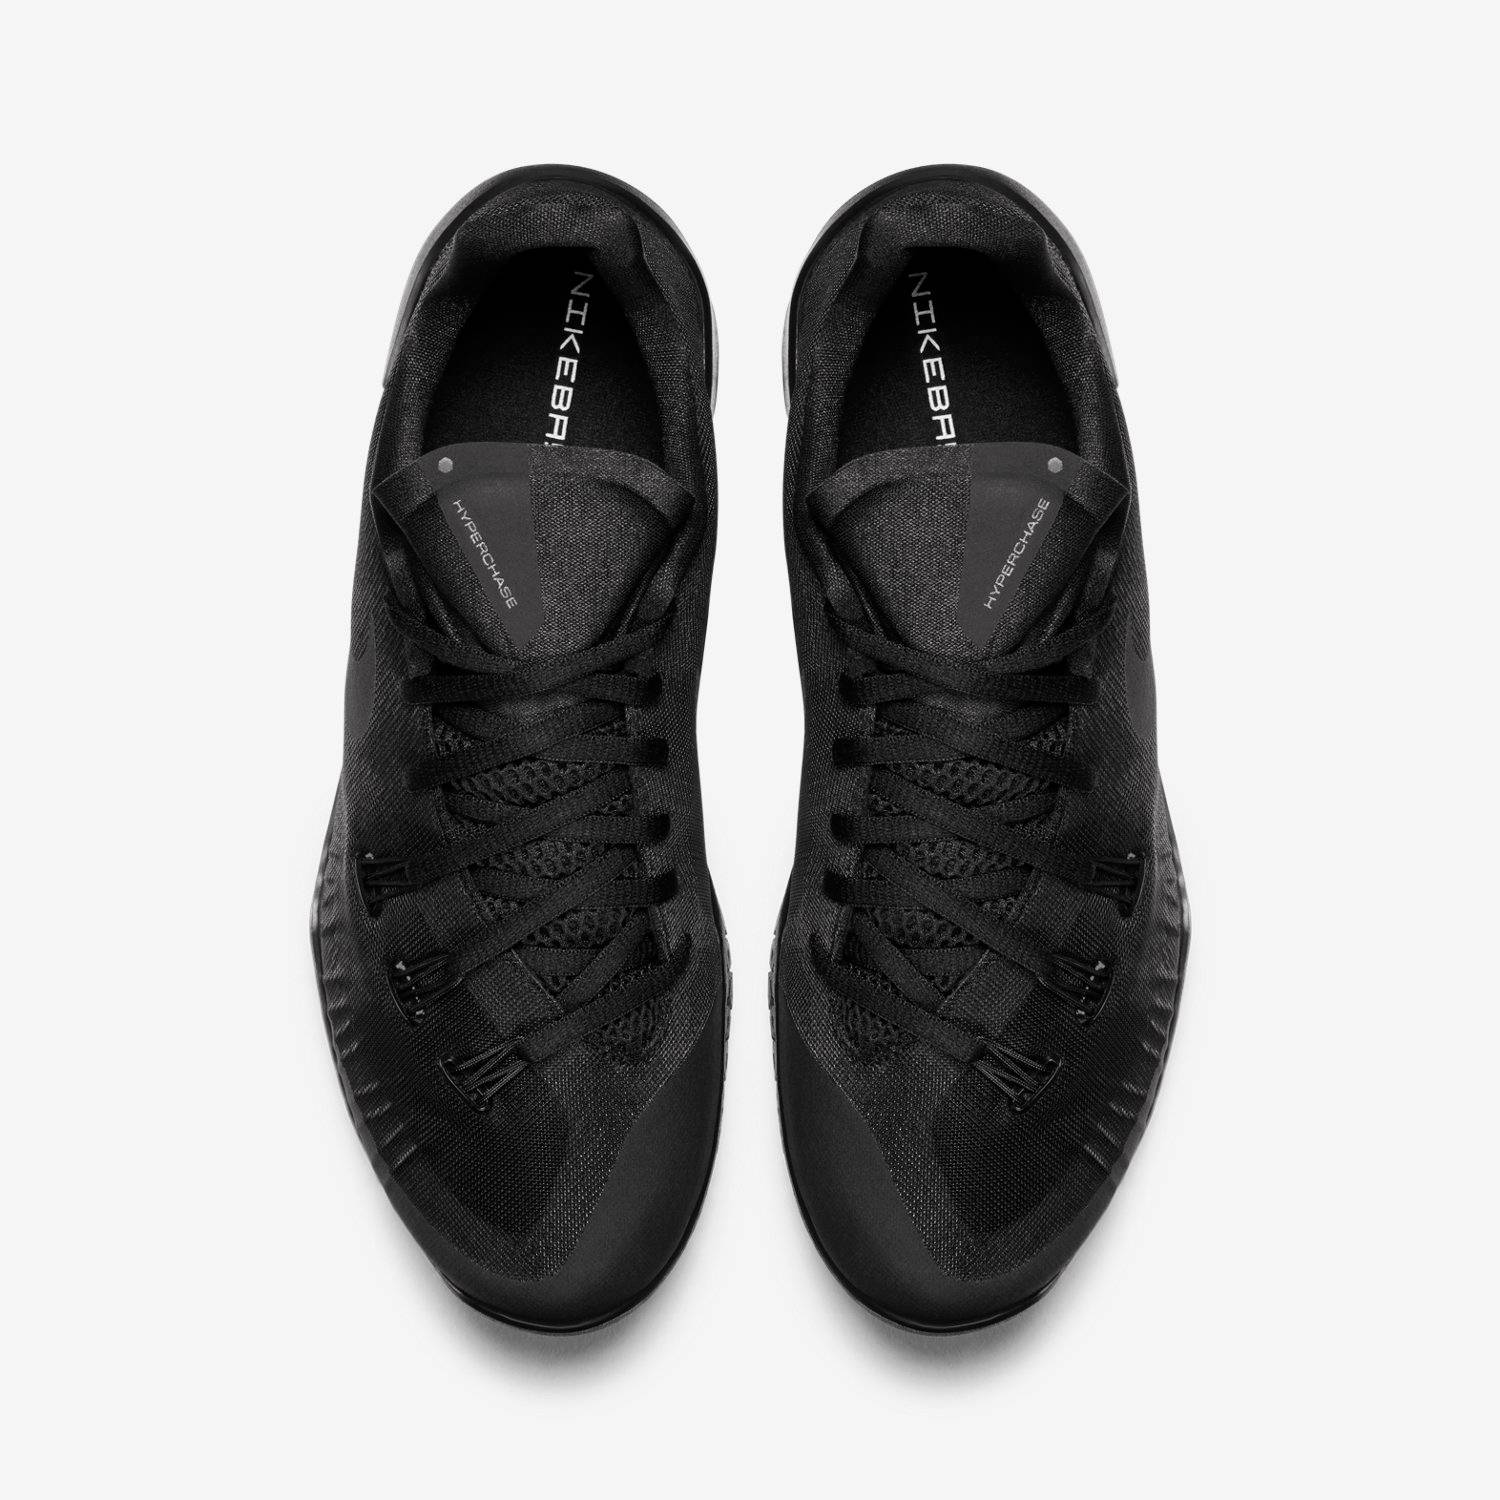 e85b1a1256bb HyperChase - Nike - 705363 003 GOAT fast delivery 238f6 9c8bb ...